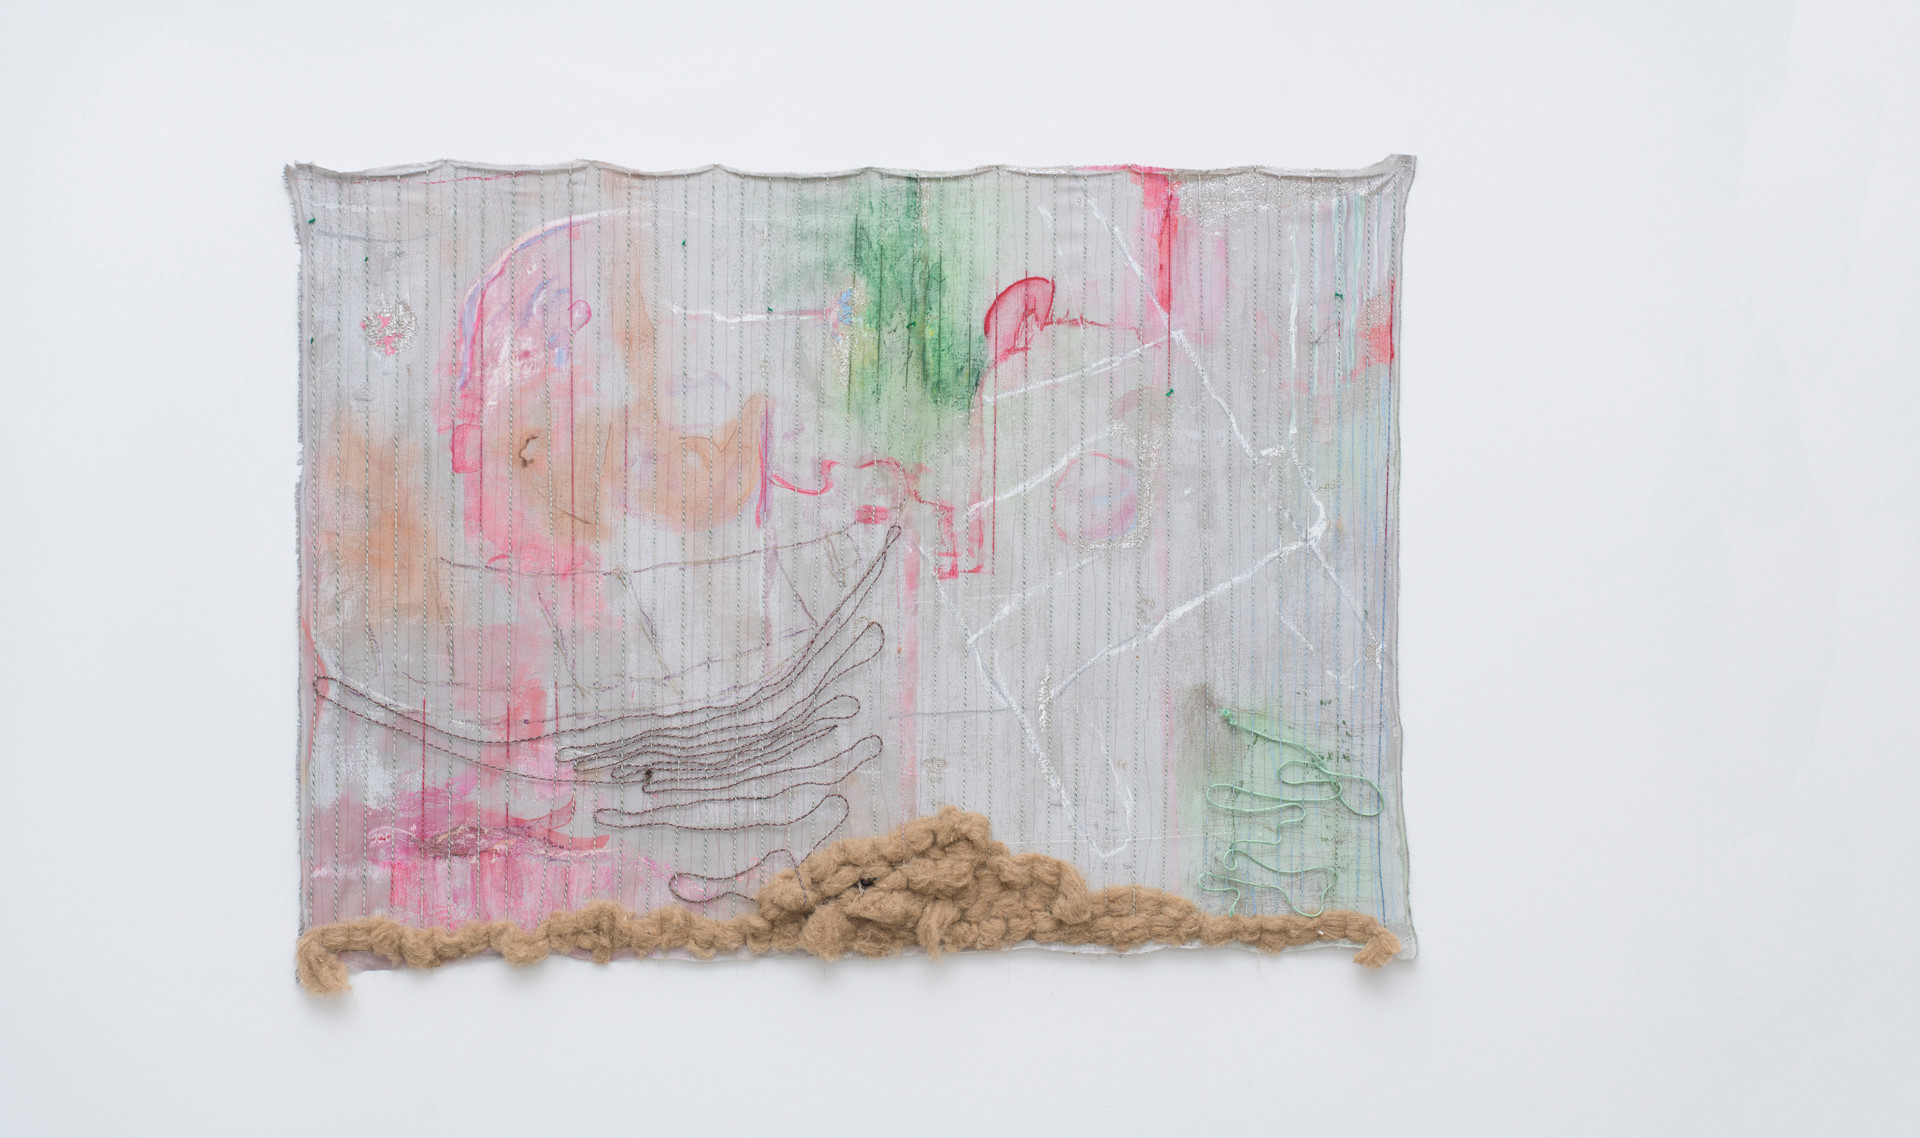 Autazes, 2017 | Oil, ropes, copper wire, coconut fiber, glass beads and mica on linen | 117 x 159 x 8 cm